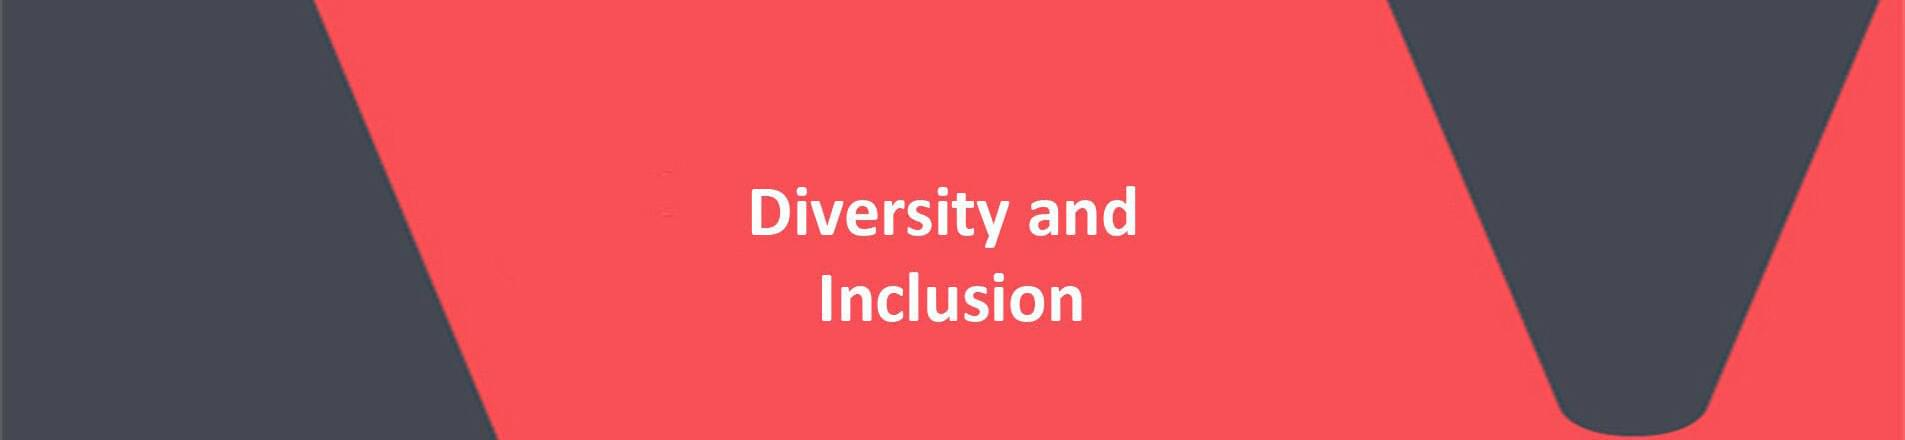 Words Diversity and Inclusion on red VERCIDA branded background